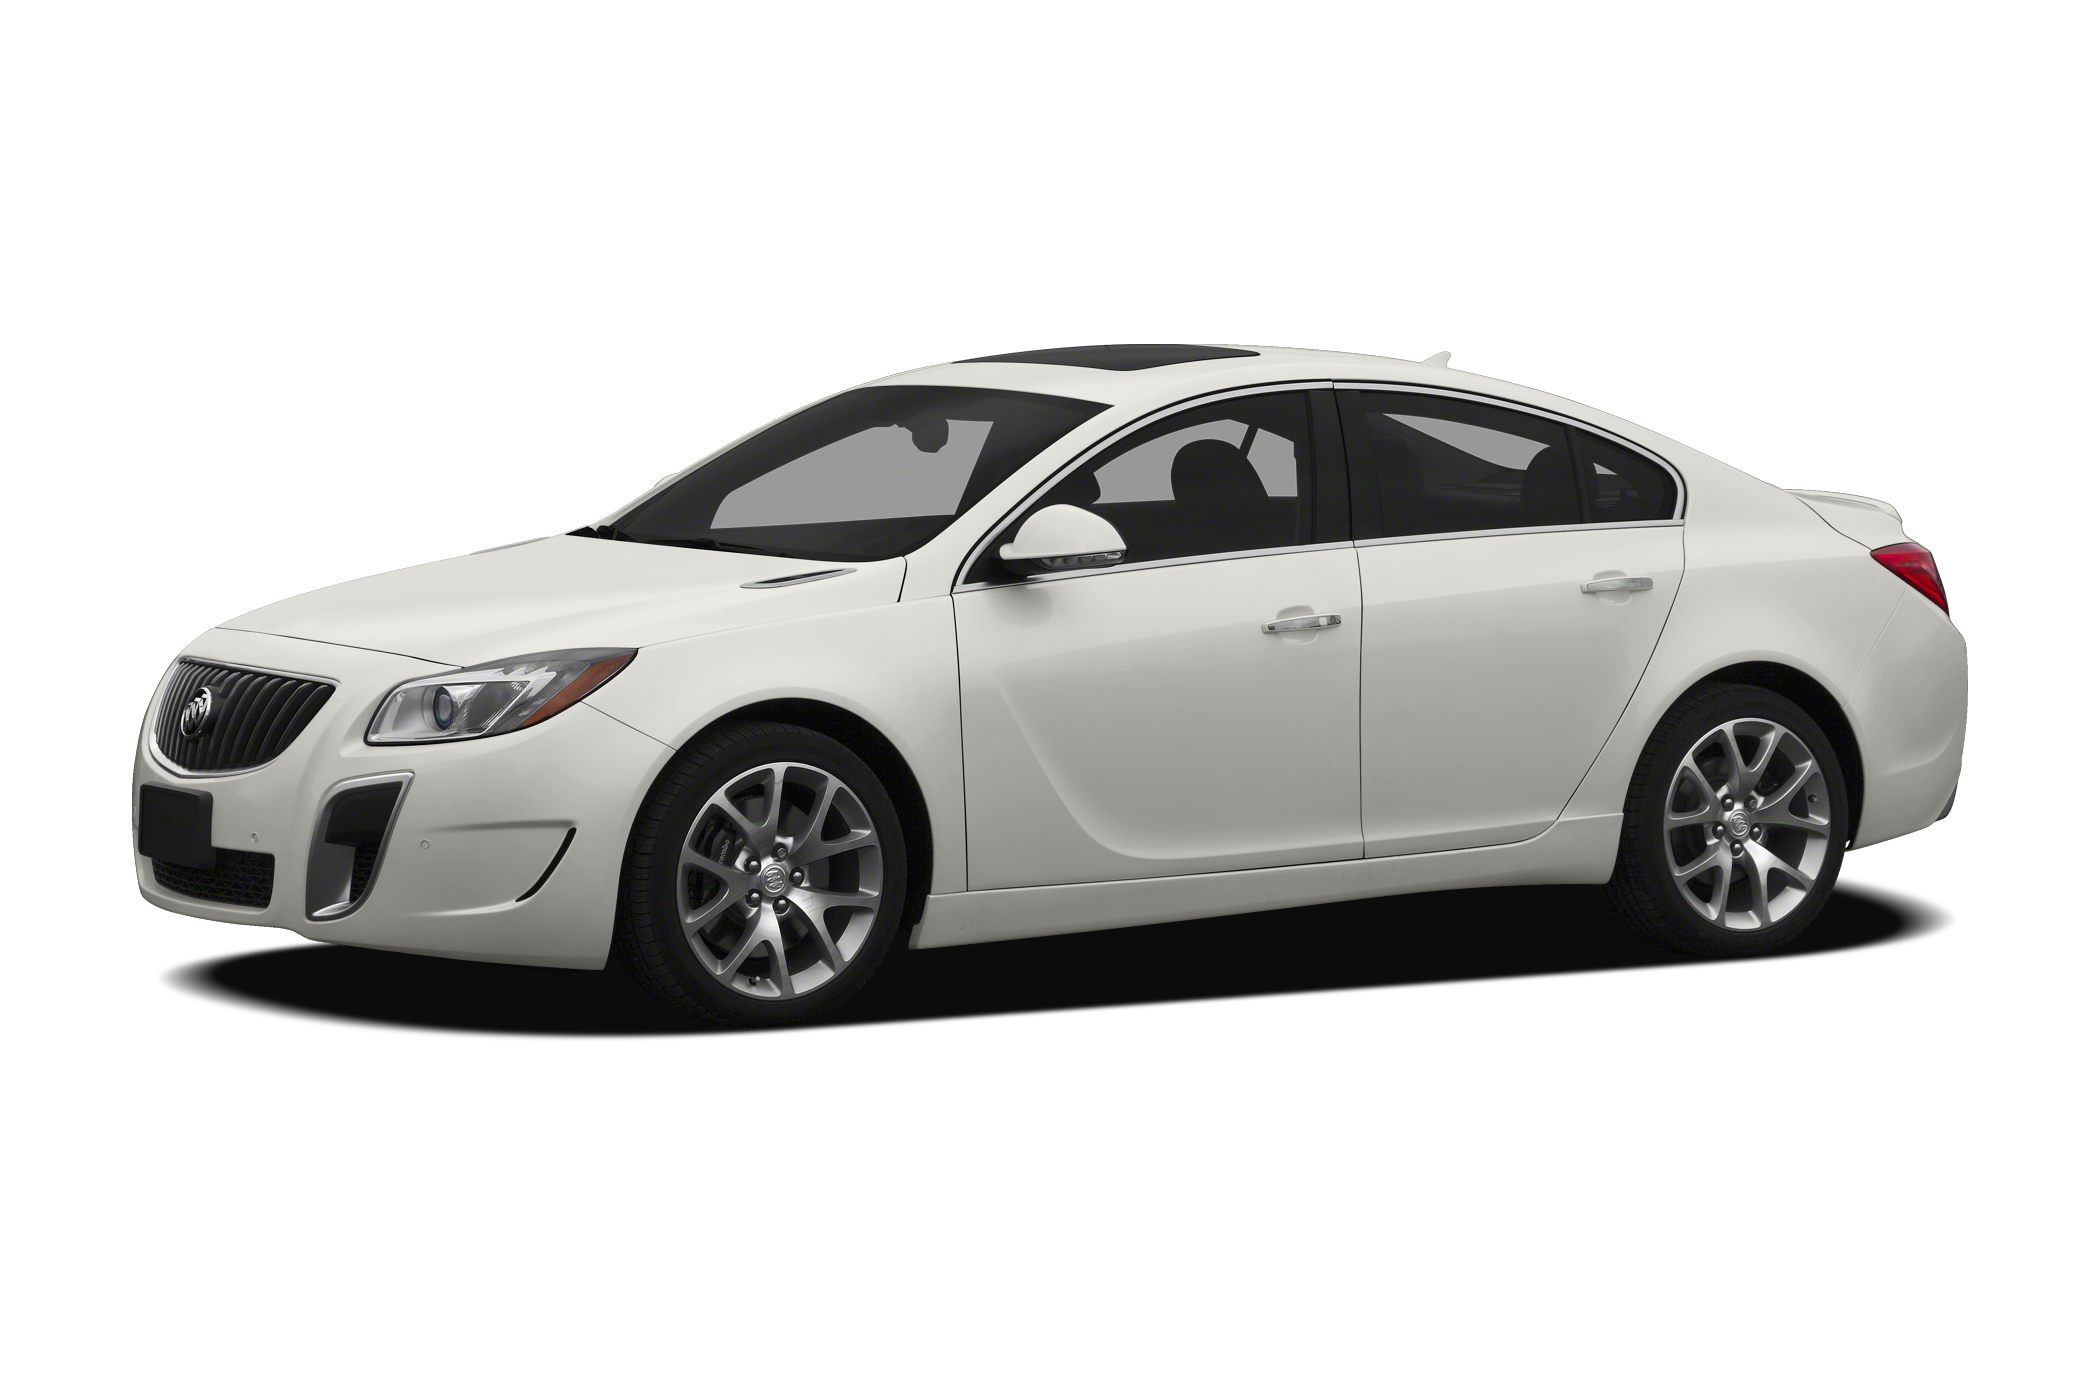 2012 Buick Regal GS Sedan for sale in Southern Pines for $23,885 with 43,085 miles